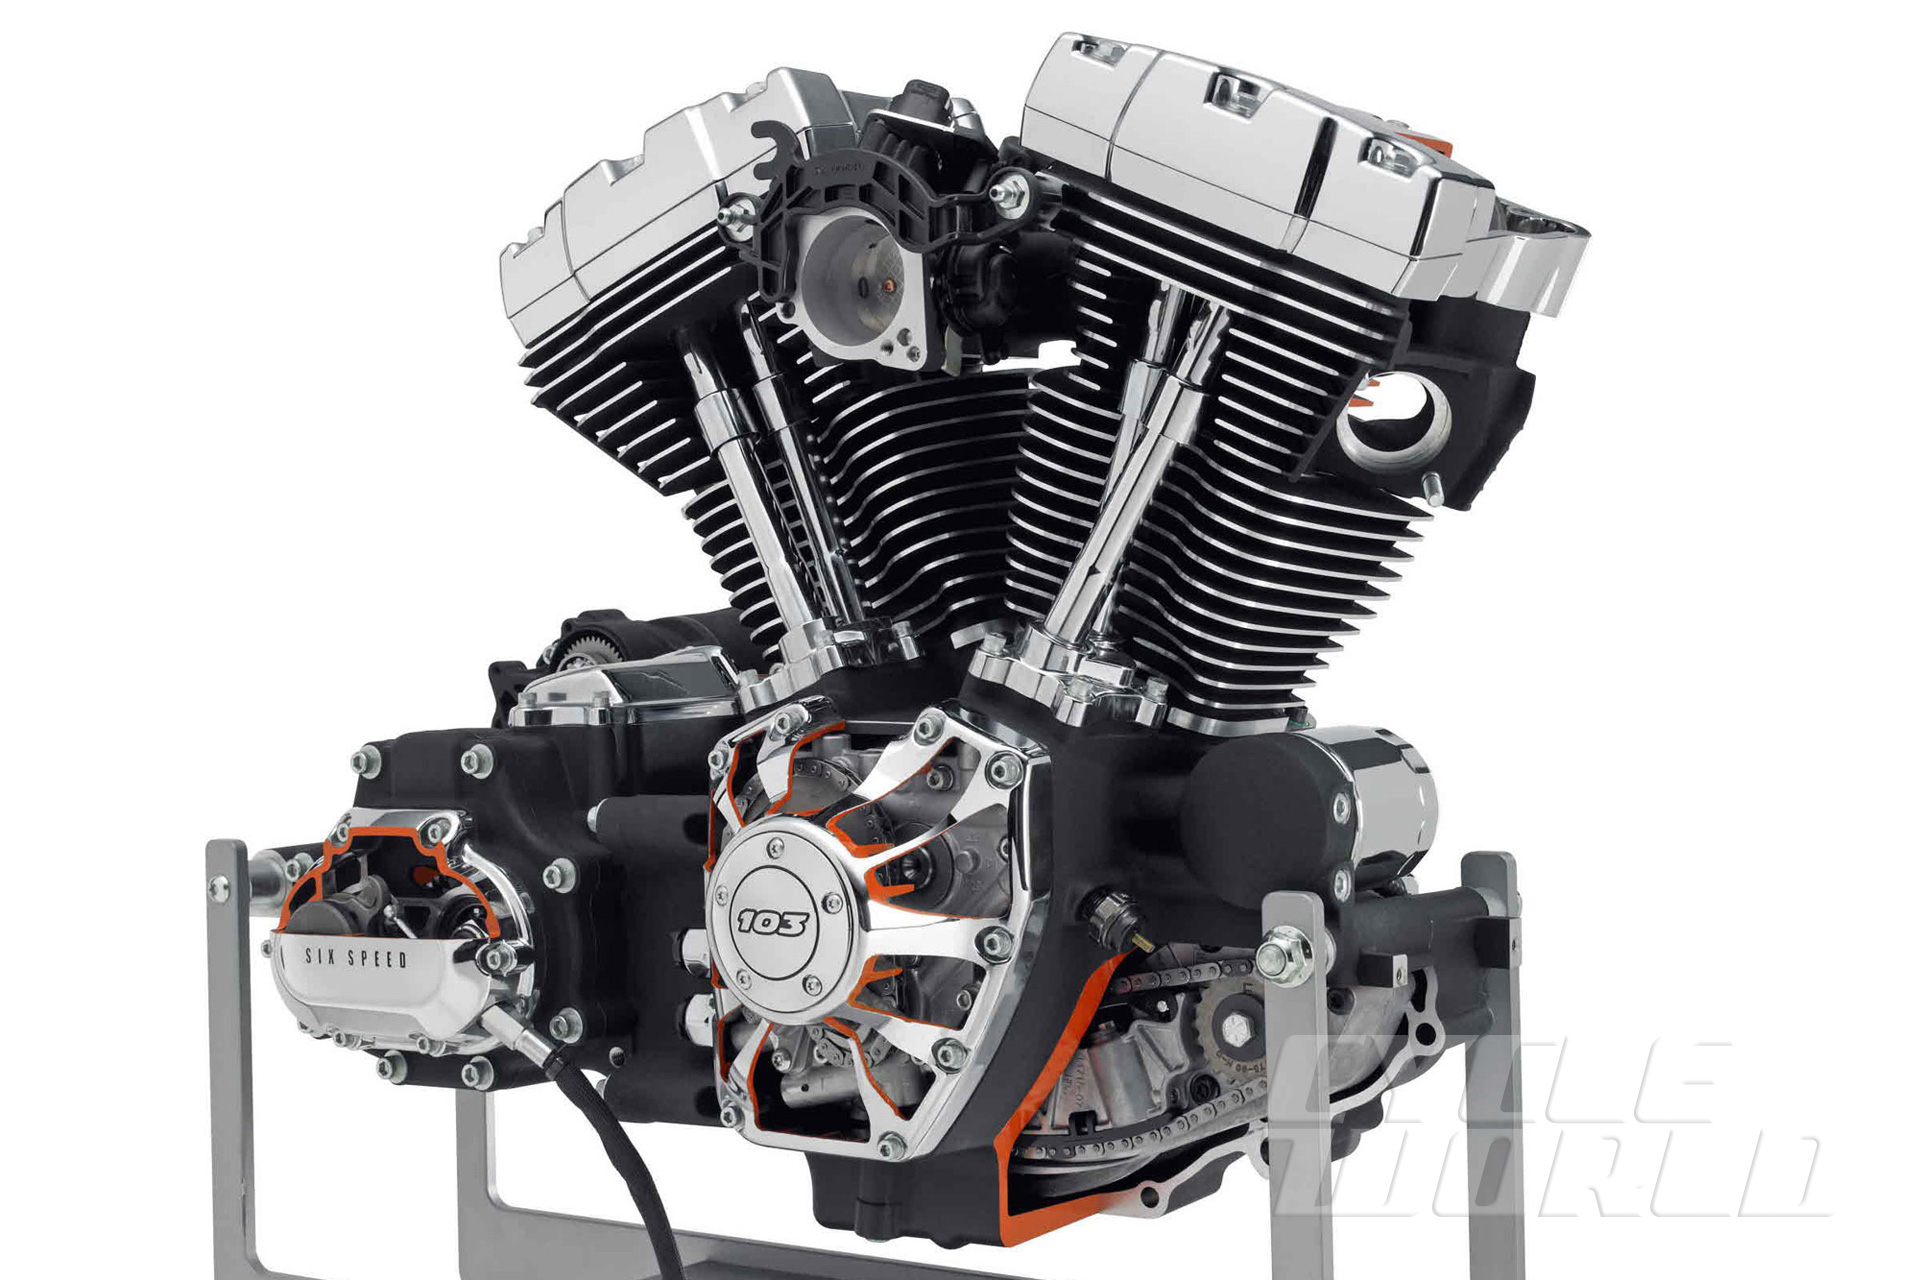 ASK KEVIN: Why Does Harley-Davidson Use a Cam Chain in the Twin Cam